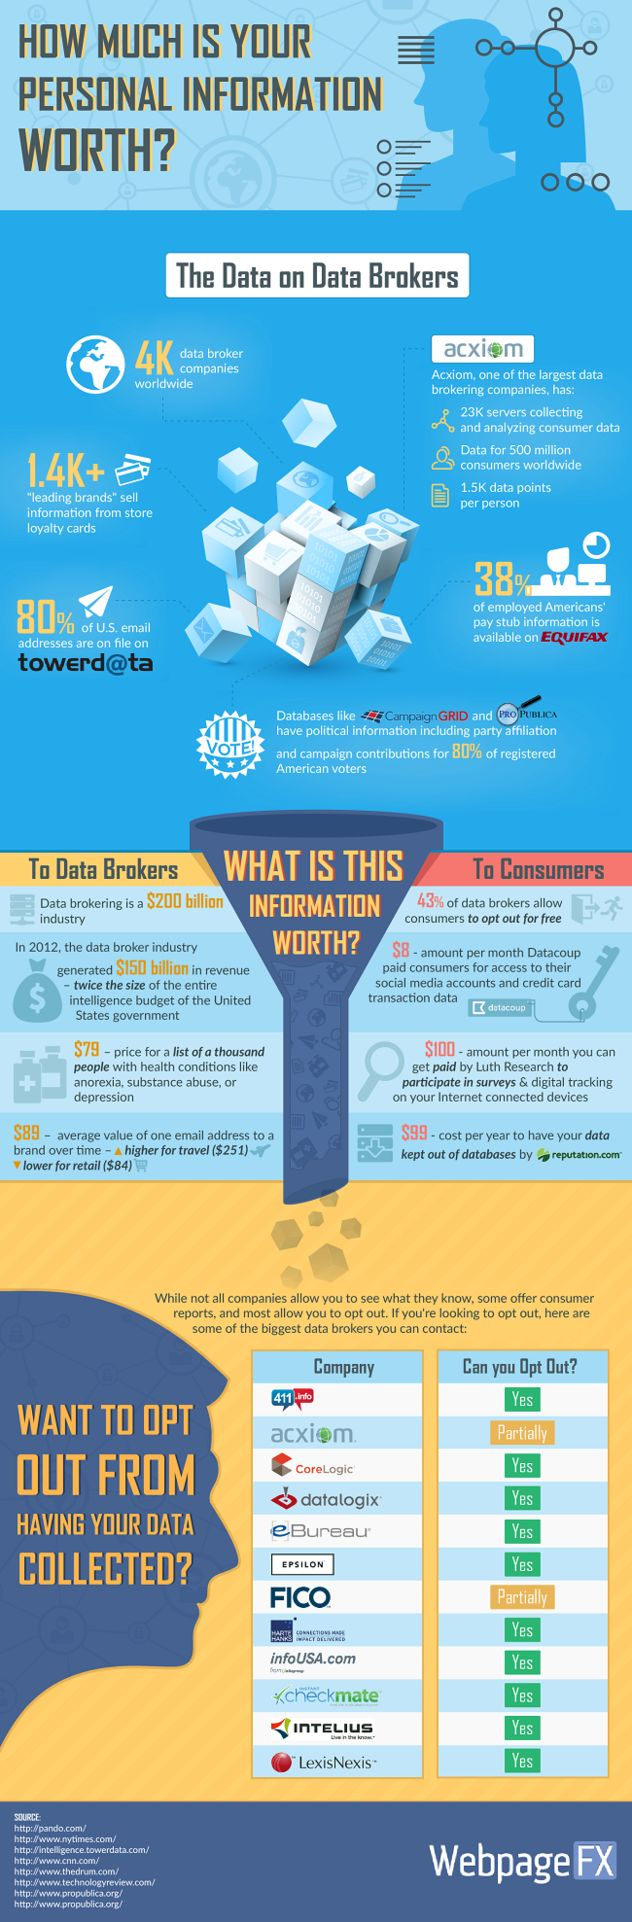 data-broker-infographic1